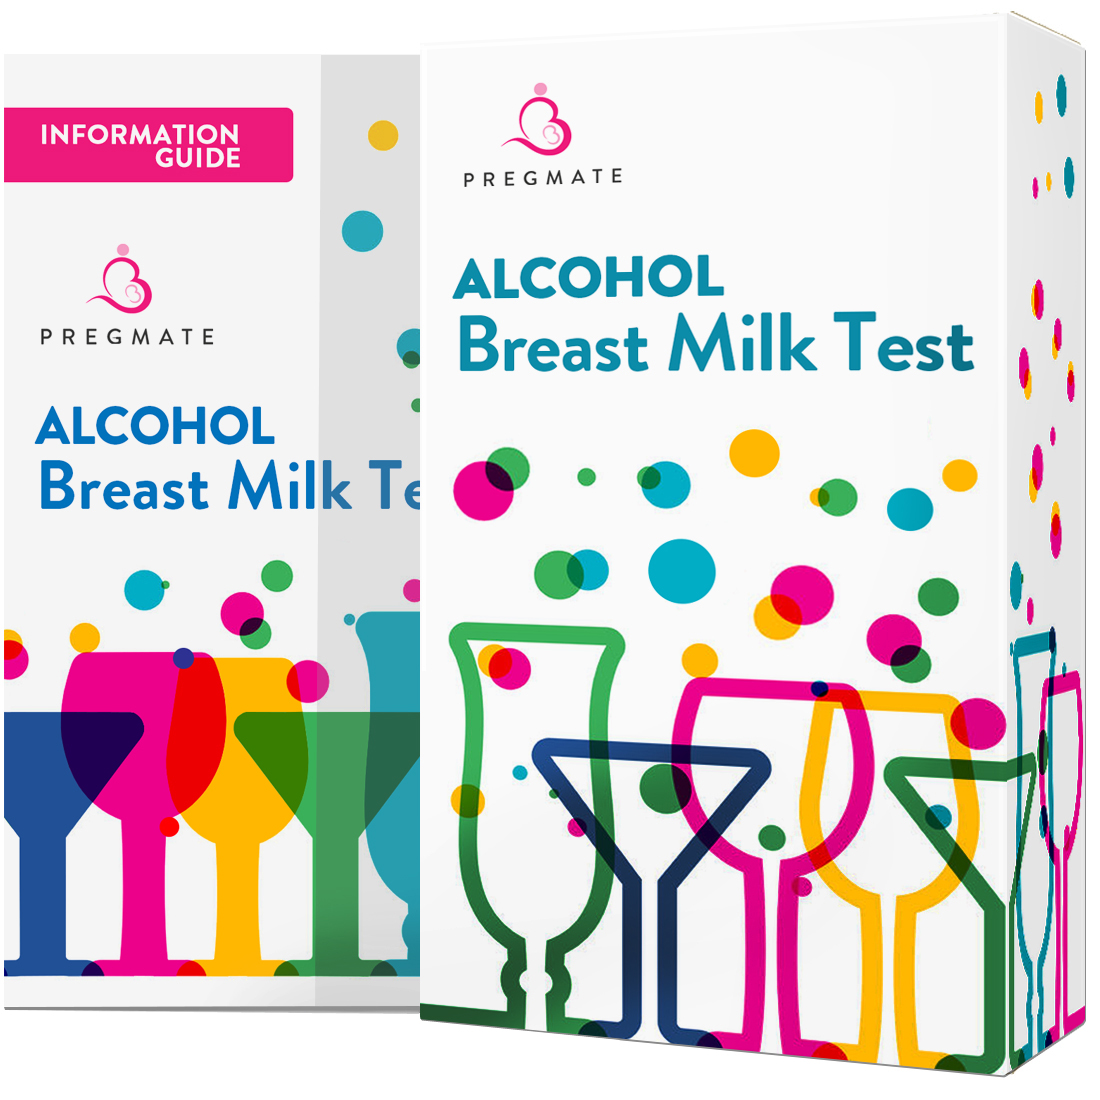 PREGMATE 25 Alcohol Breast Milk Tests One Step Breastmilk Test Strips For Breastfeeding (25)